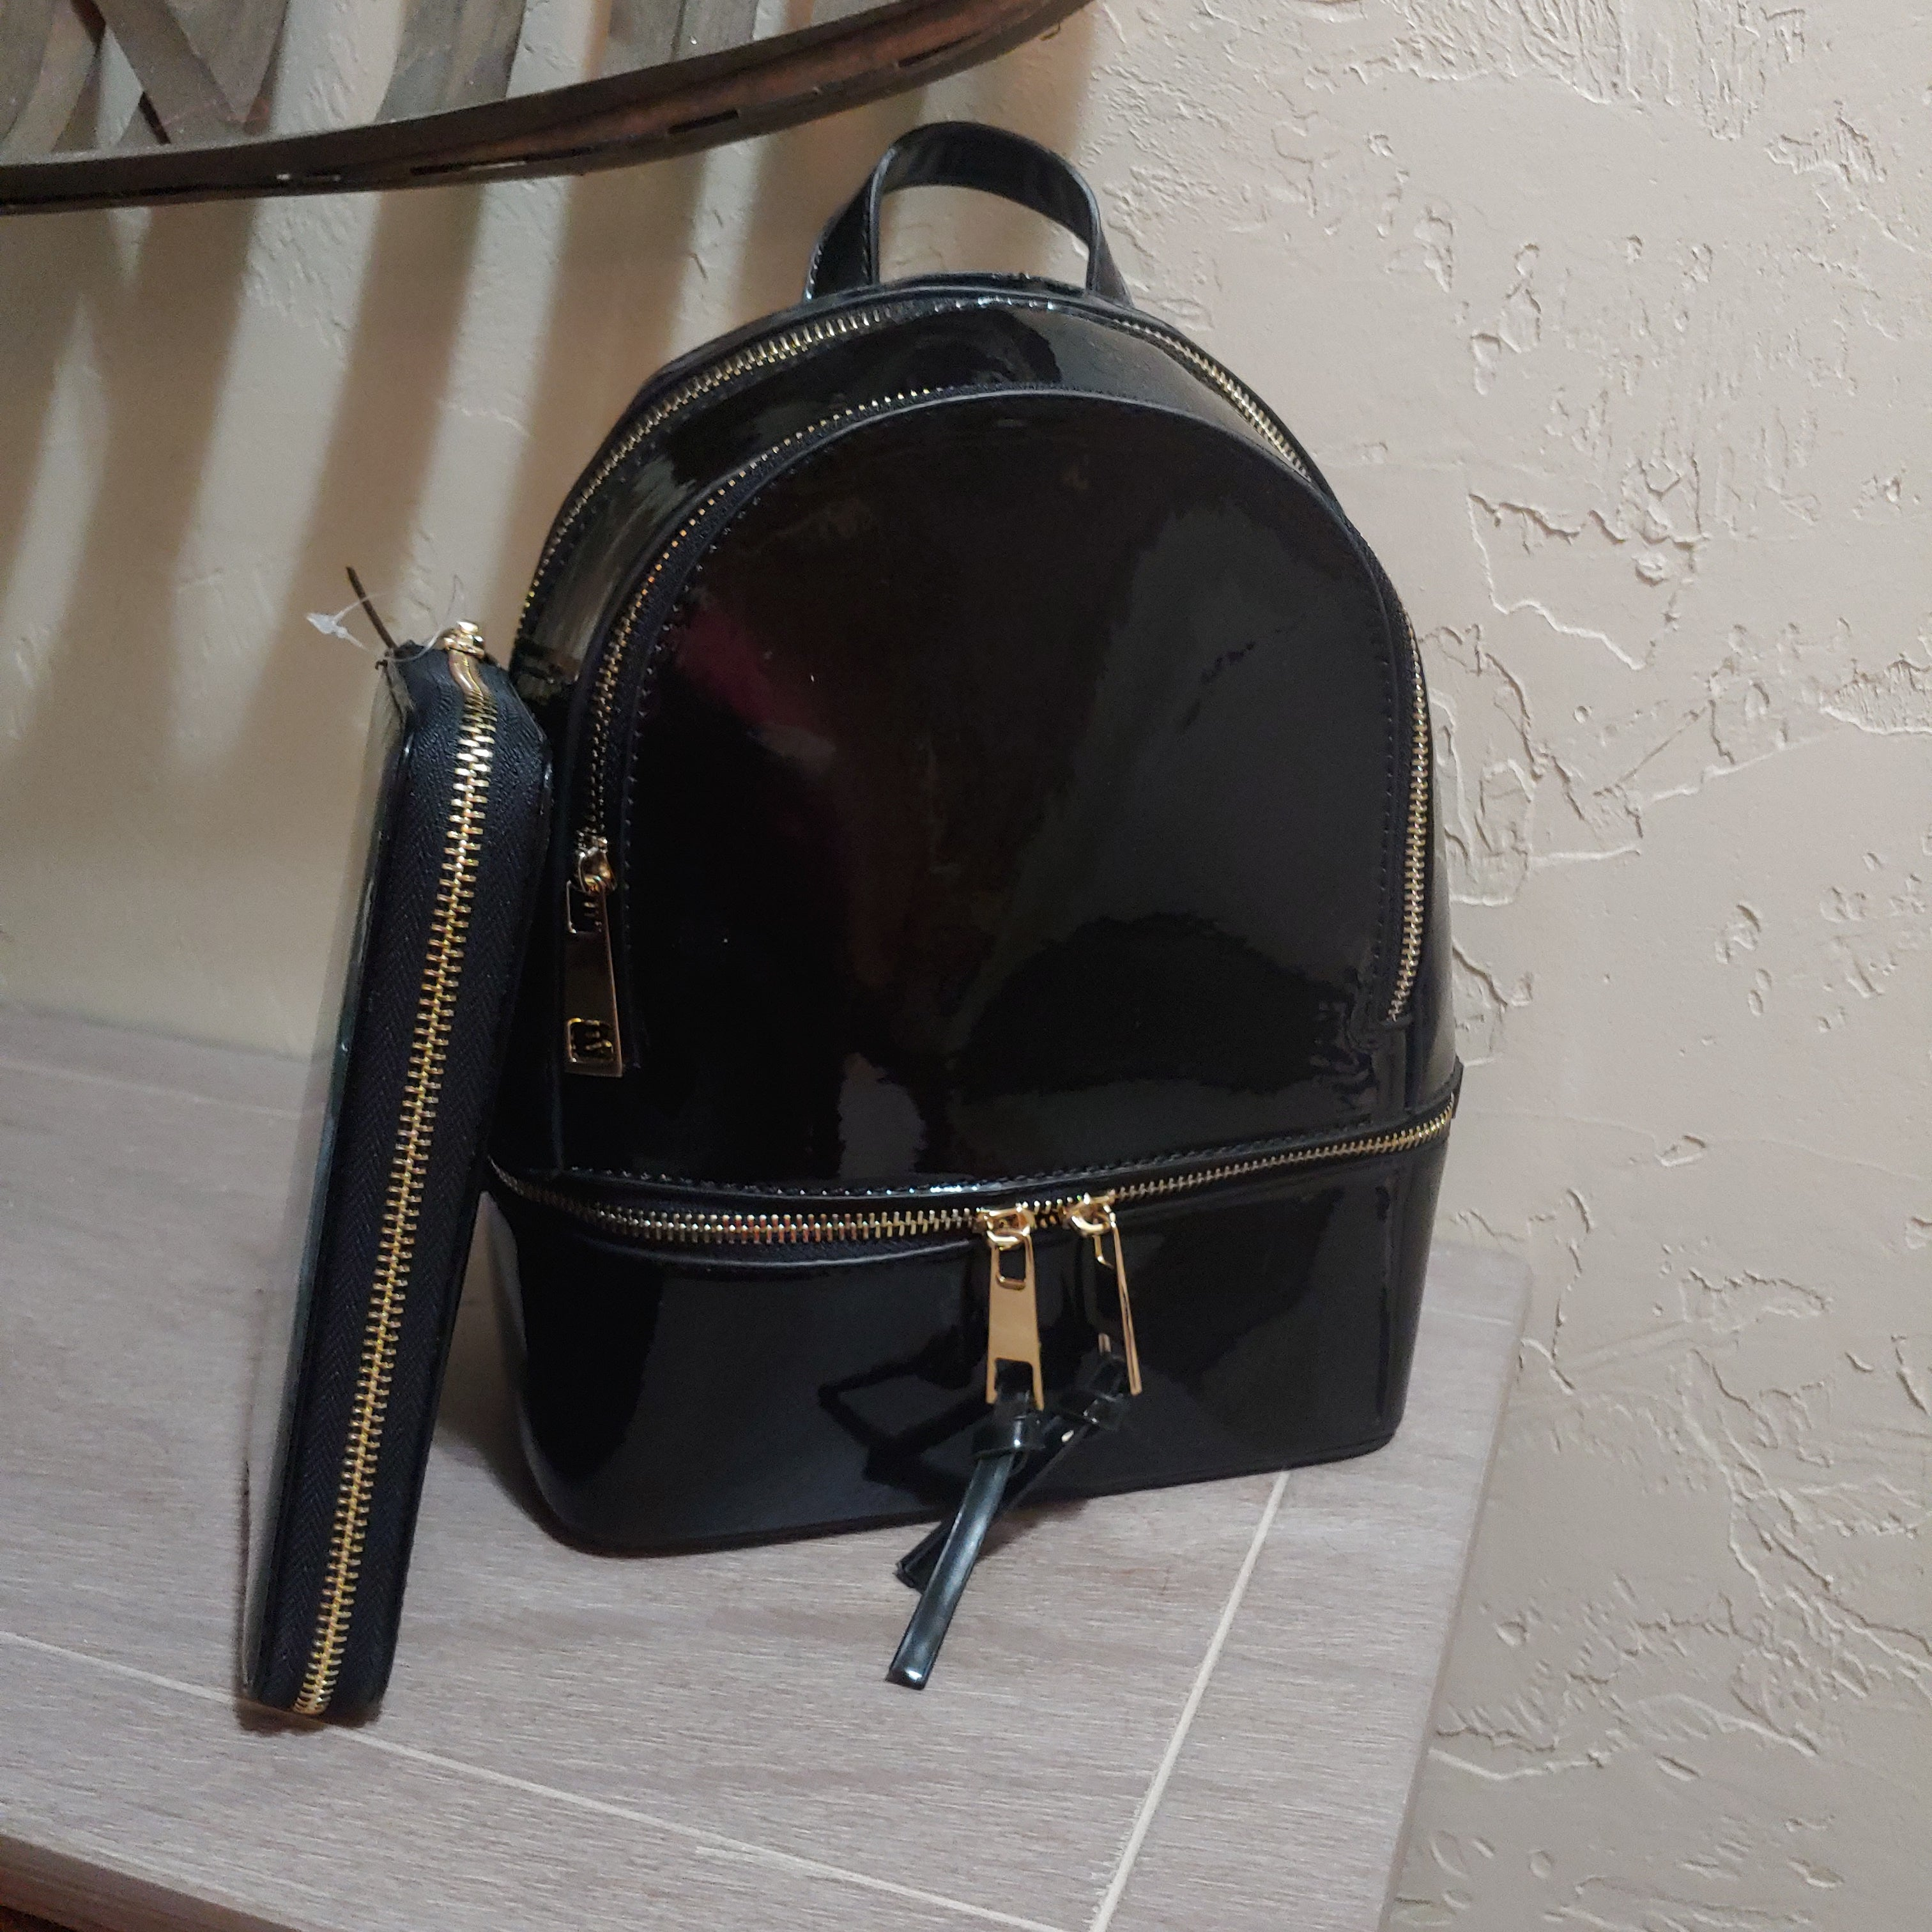 Metallic Black  Backpack Purse & Wallet